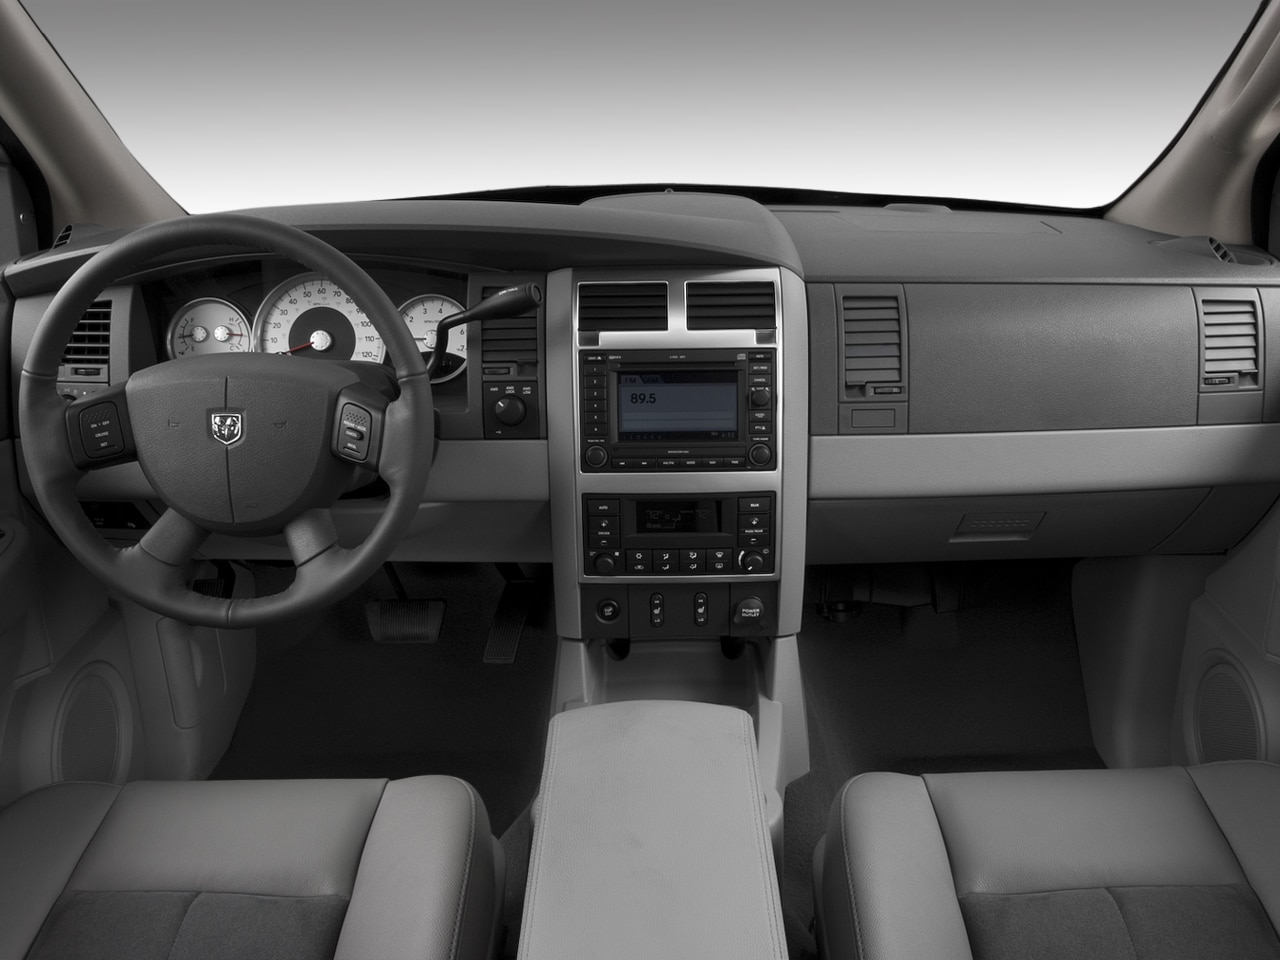 2007 Dodge Durango Reviews And Rating Motortrend